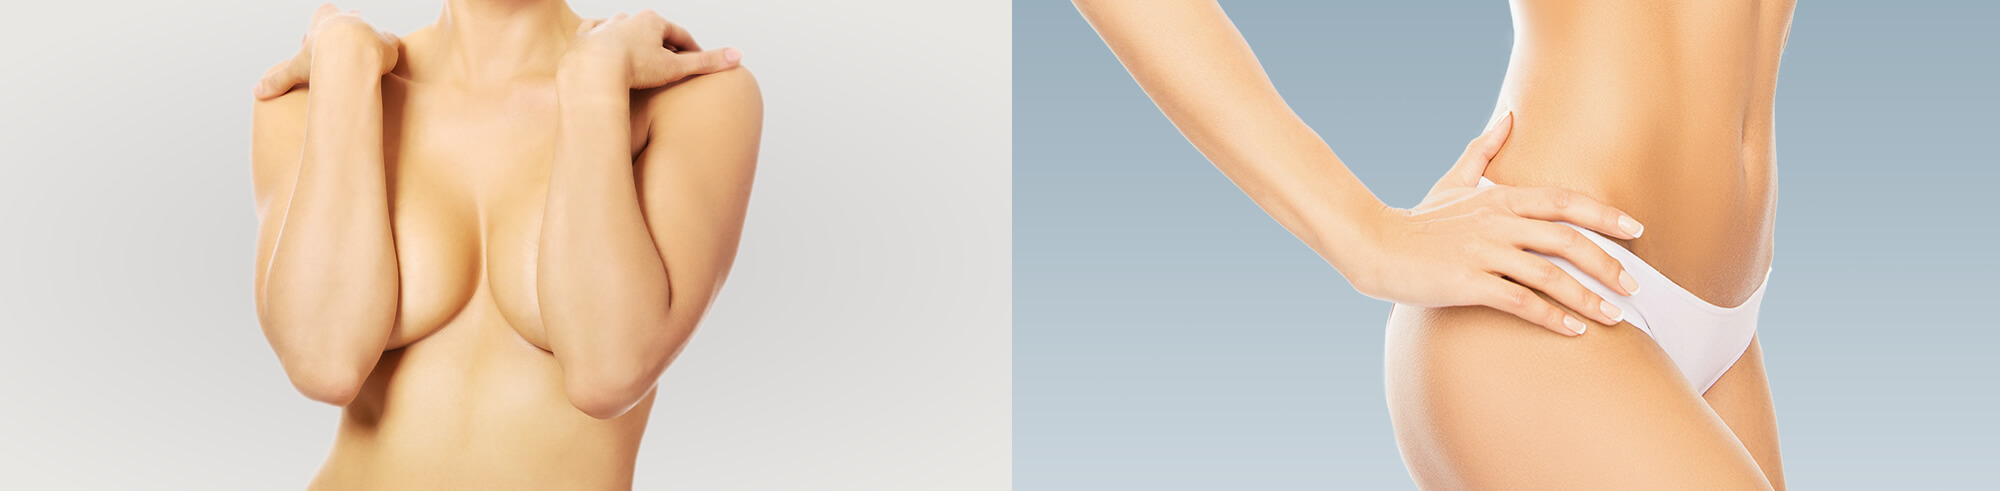 Liposuction And Body Sculpting